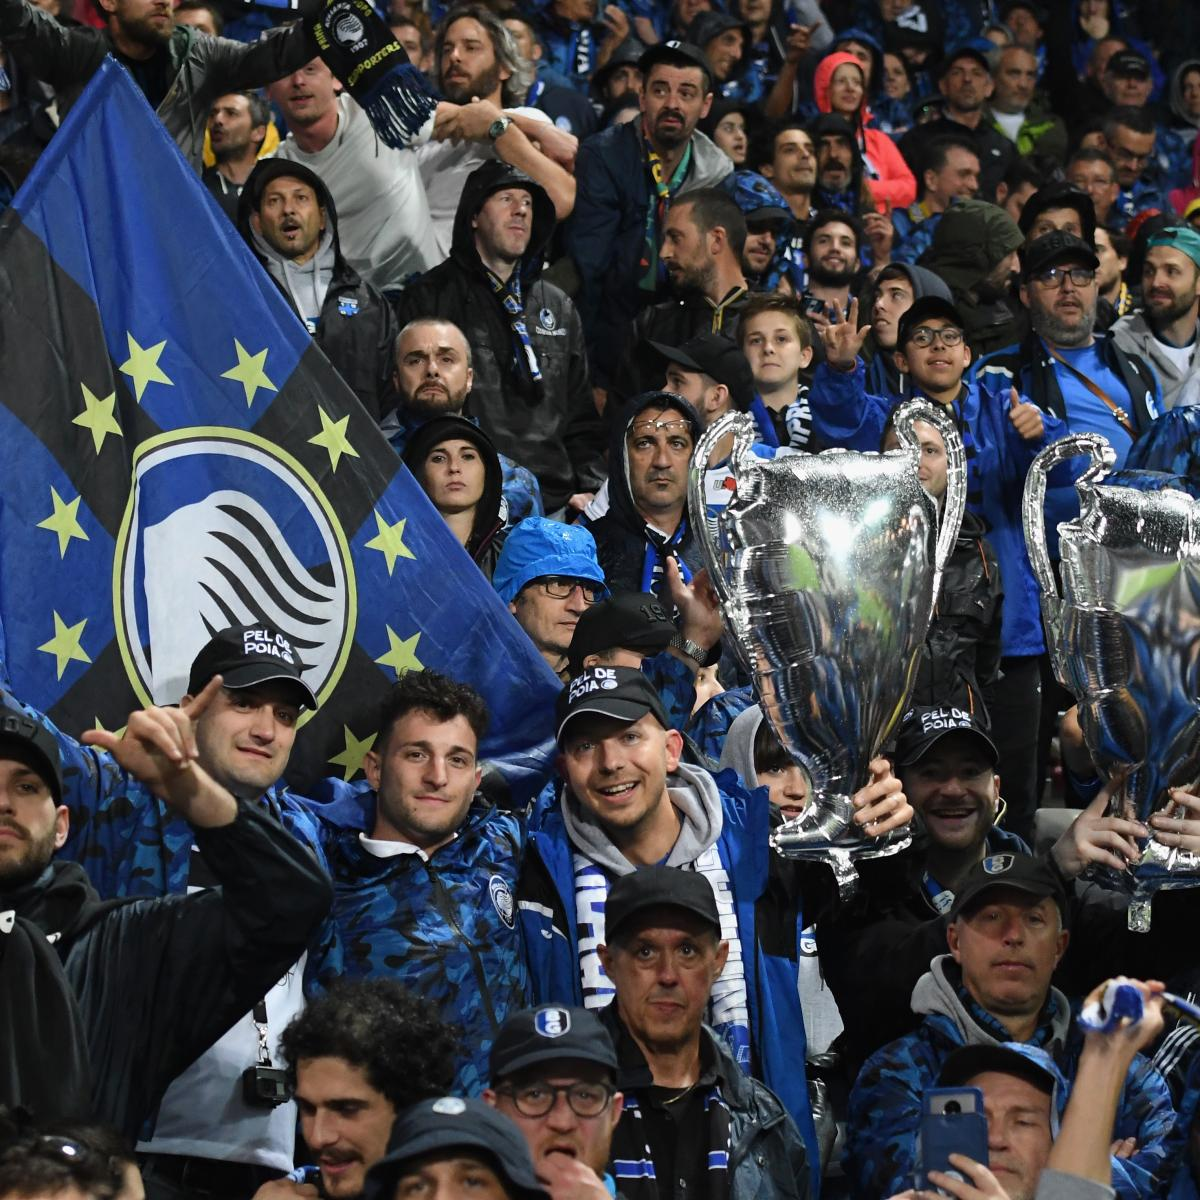 'Is This Really Happening?' Fans' View of Atalanta's Champions League Miracle